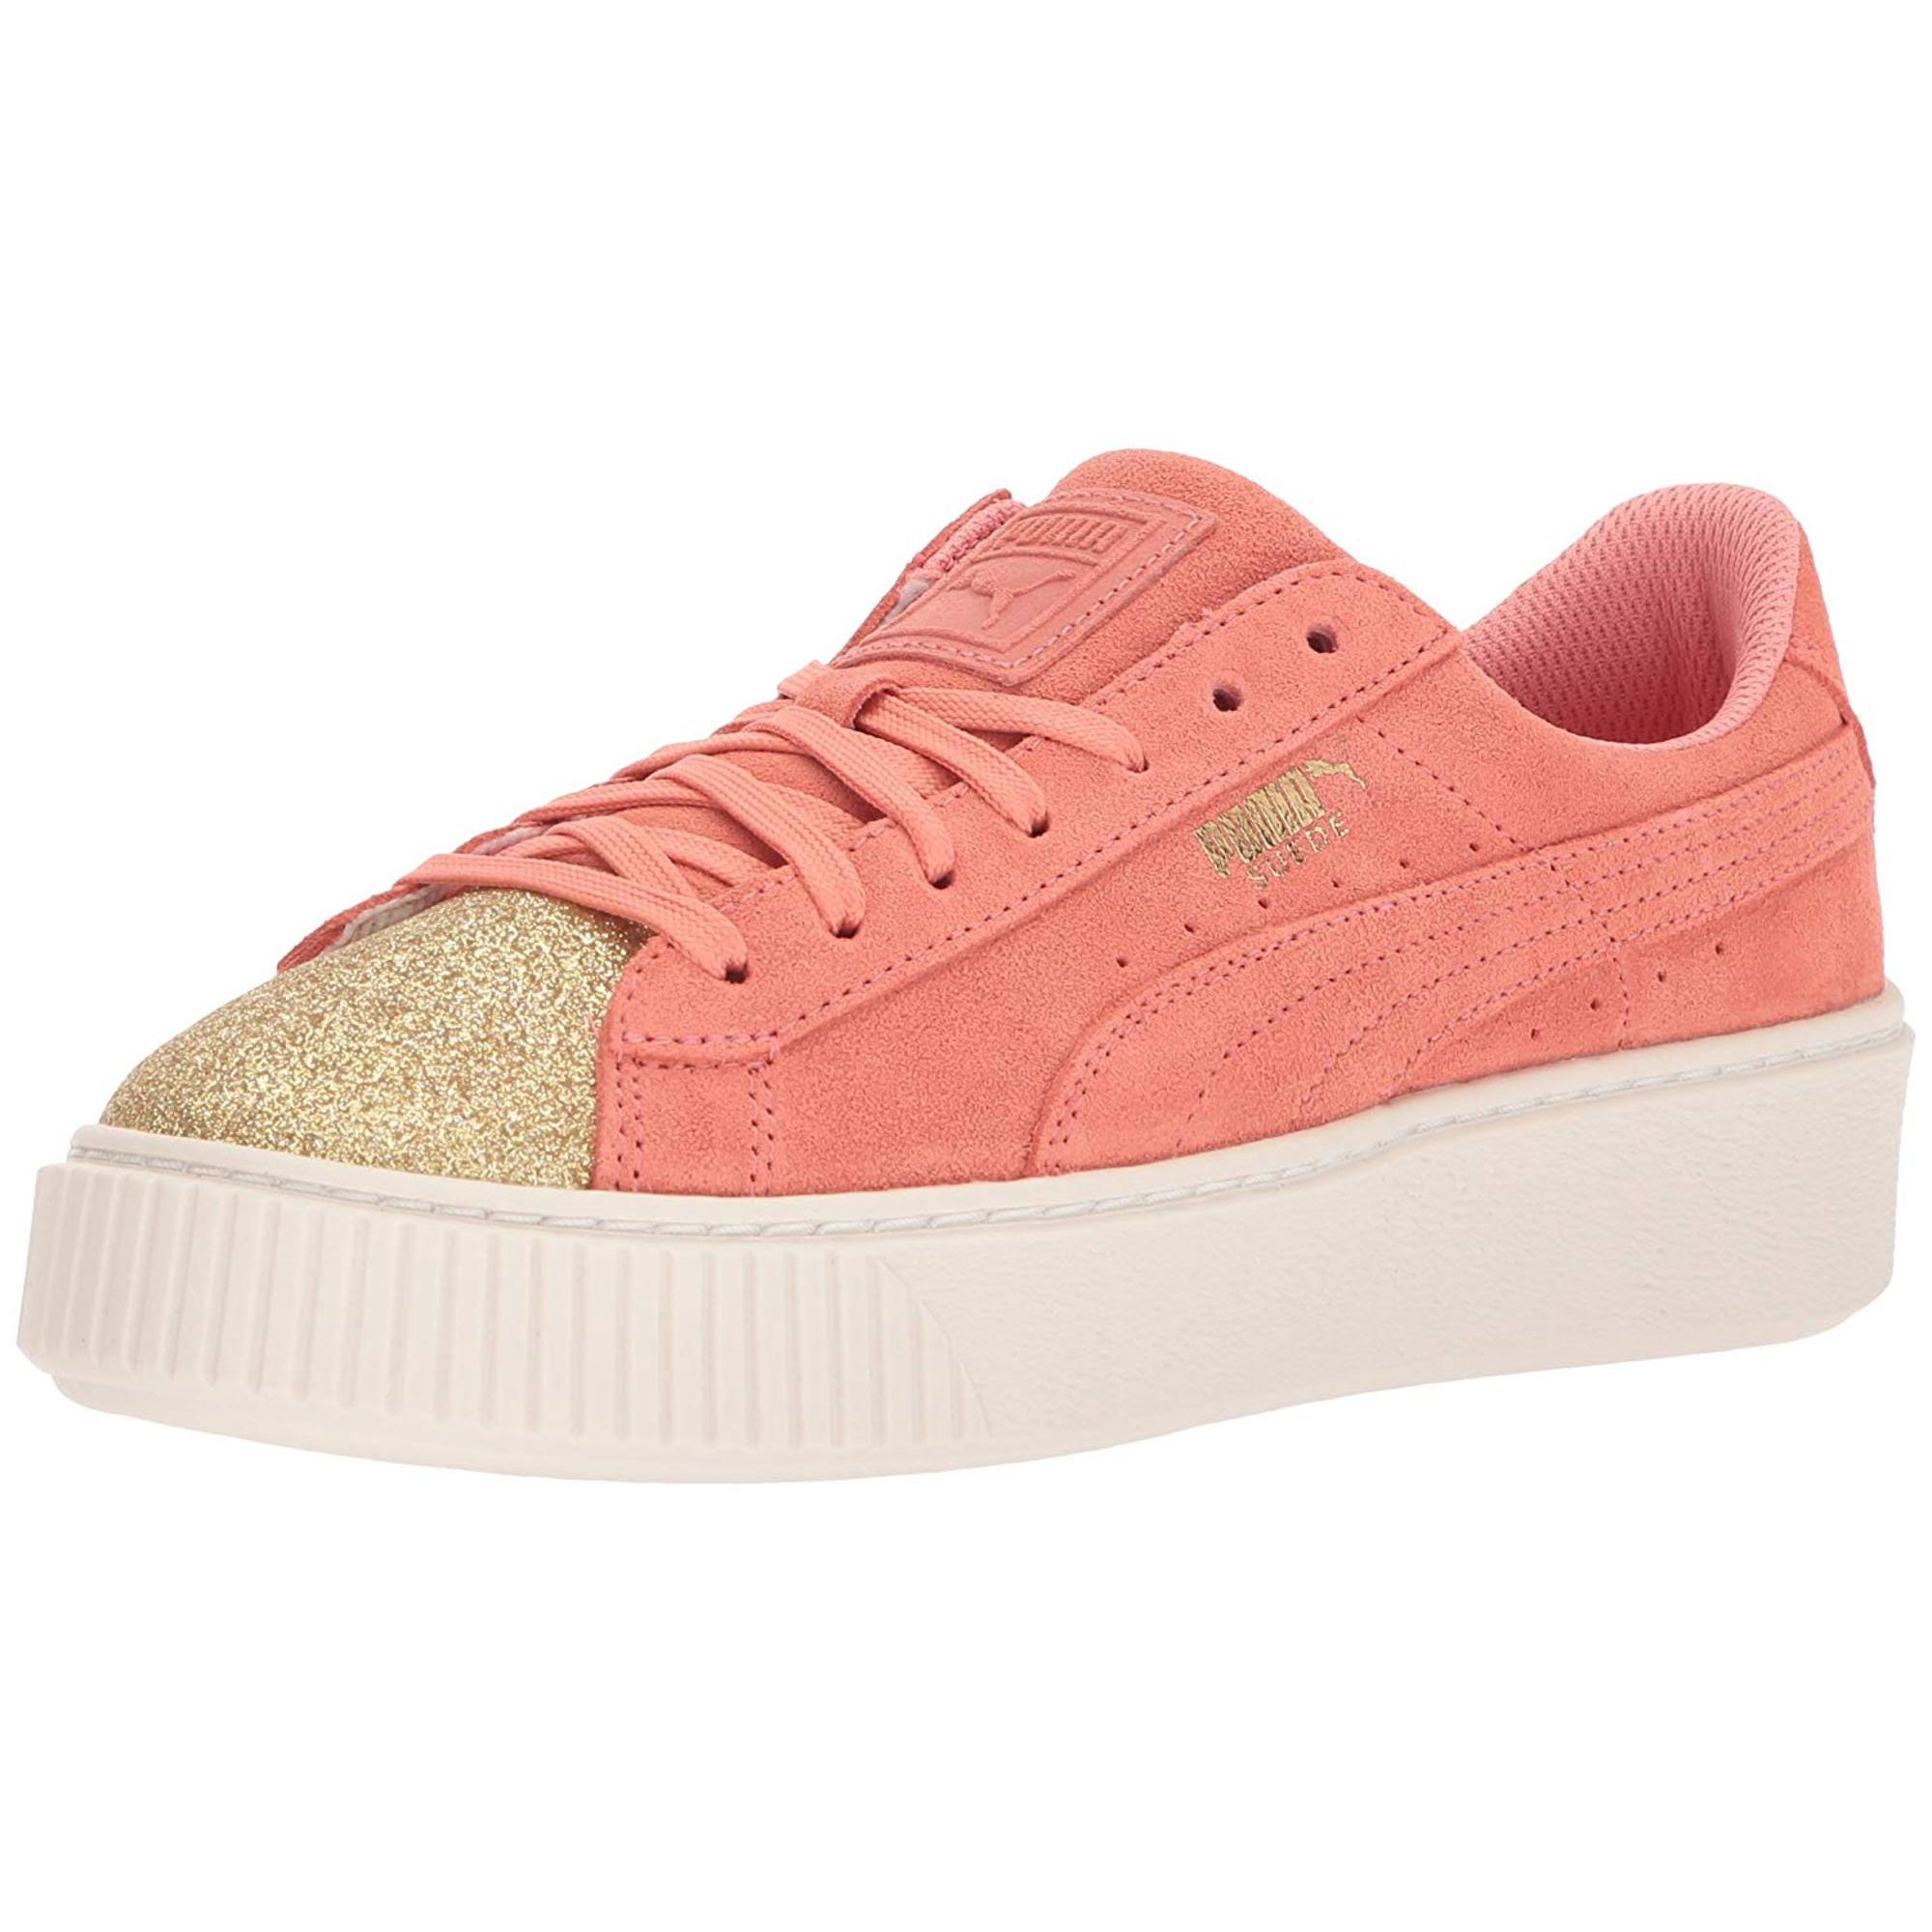 buy good favorable price classcic Kids Puma Girls Kids' Suede Platform Glam Sneaker Low ...